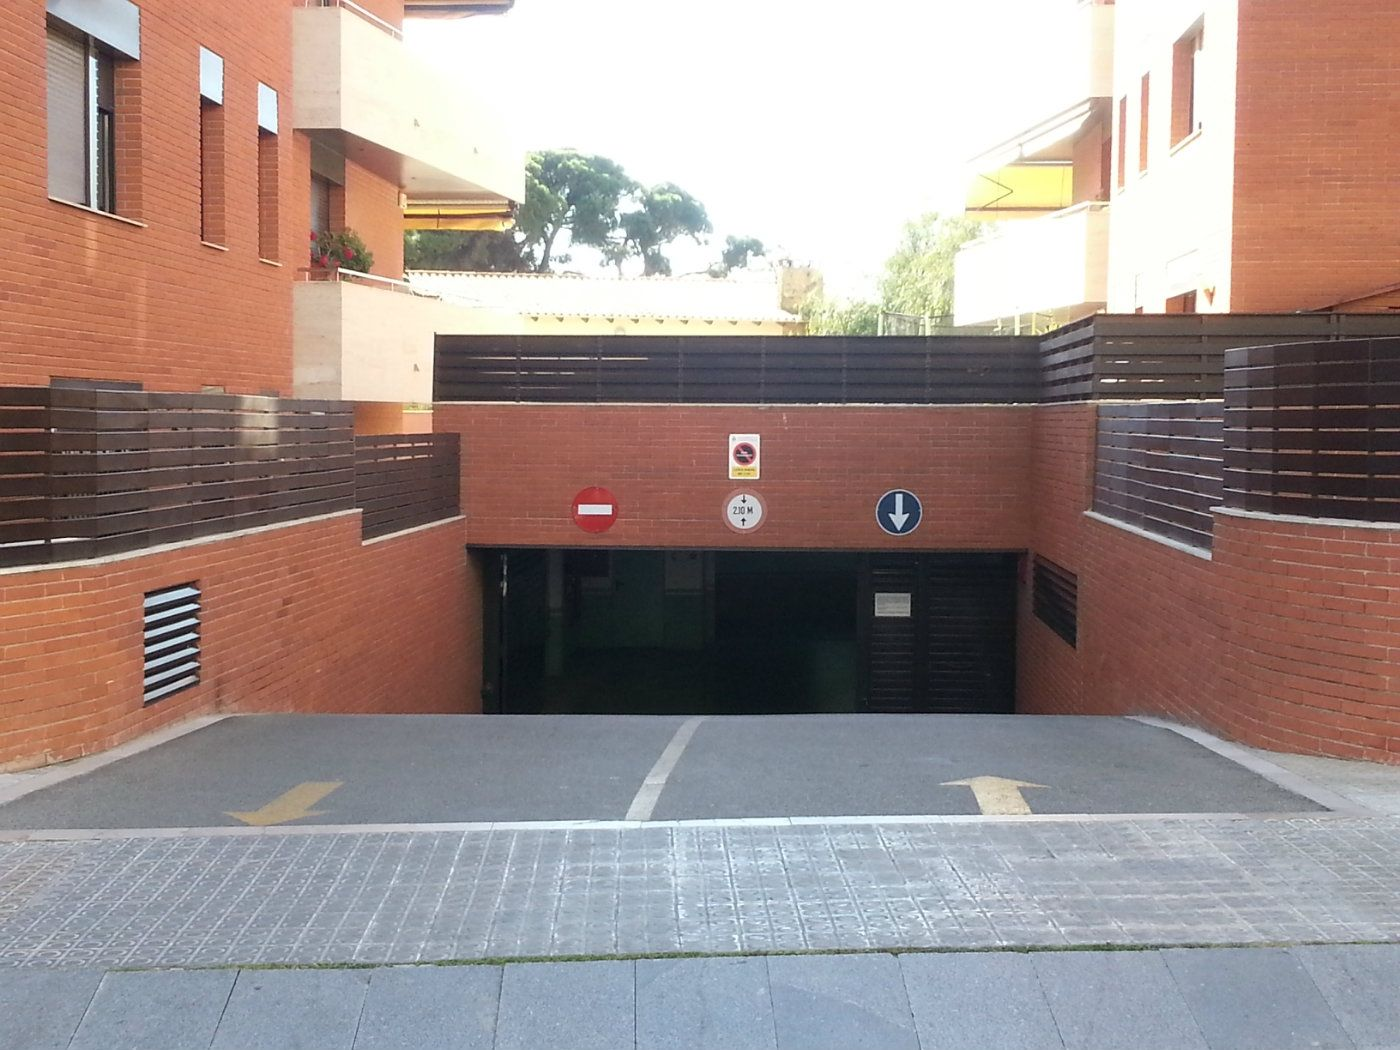 Alquiler Parking coche en Carrer olerdola, 21. Plaza parking residencial mg